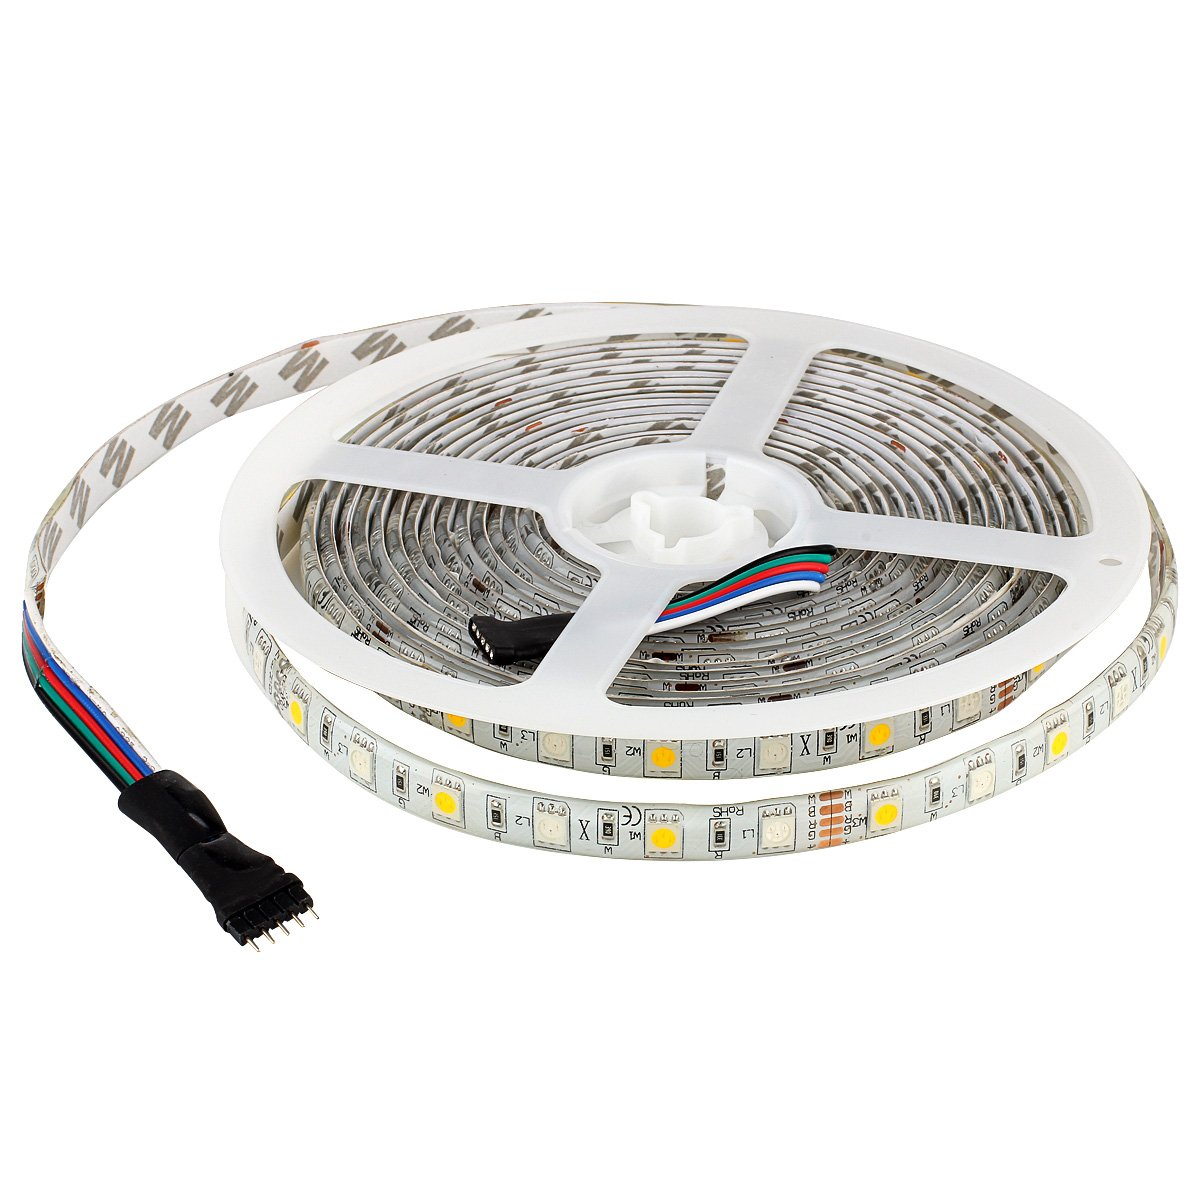 Supernight Rgbw Led Strip Light Rgb Color Changing Rope 12 Volt Wiring Diagram Free Picture Lighting With Warm White 3500k 164ft 300leds 5050 Tape